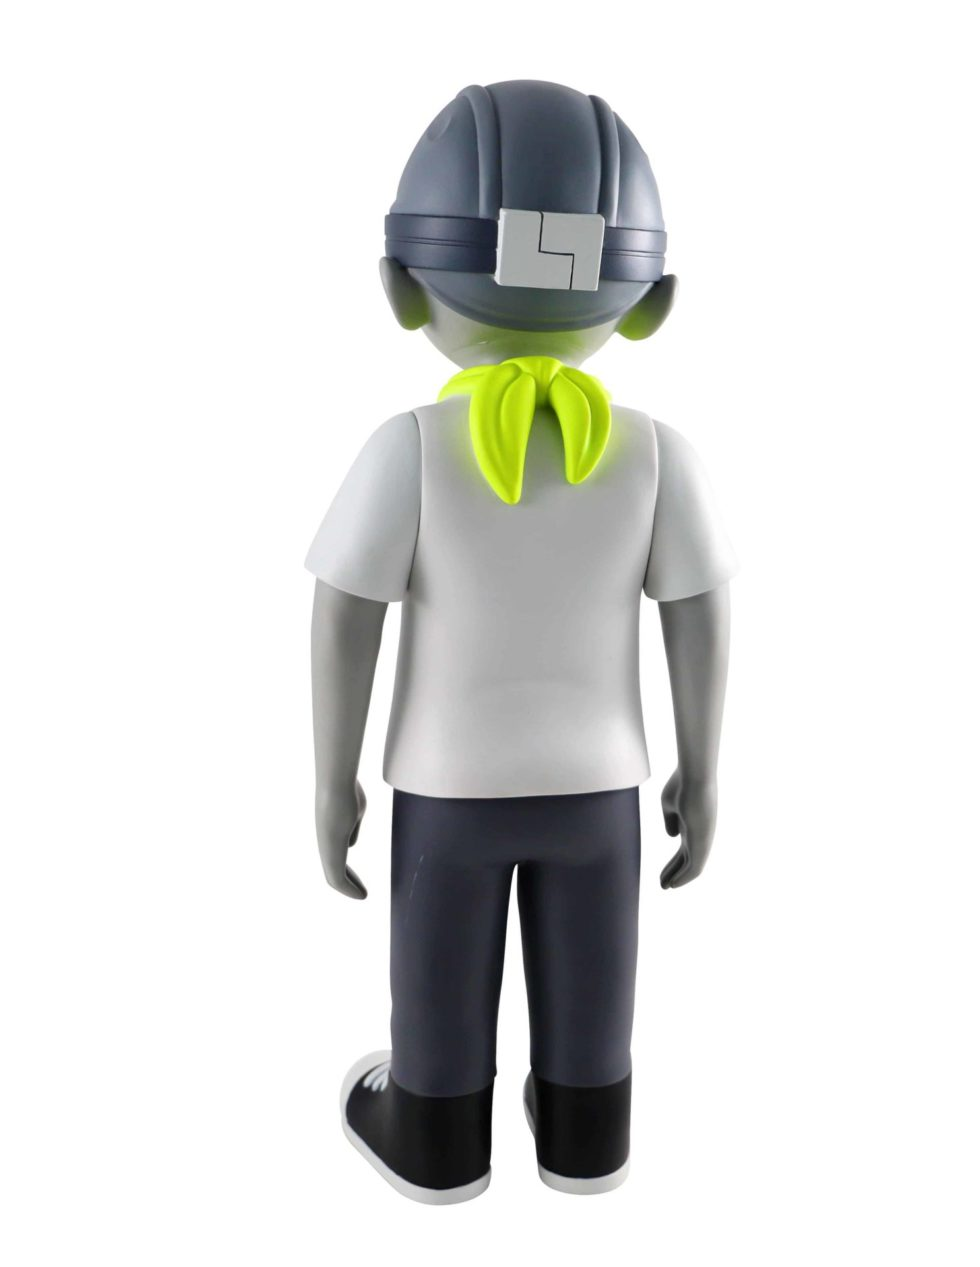 Lot #7082 – Hebru Brantley Volt Flyboy 18 Inch Vinyl Sculpture Art Toys [tag]